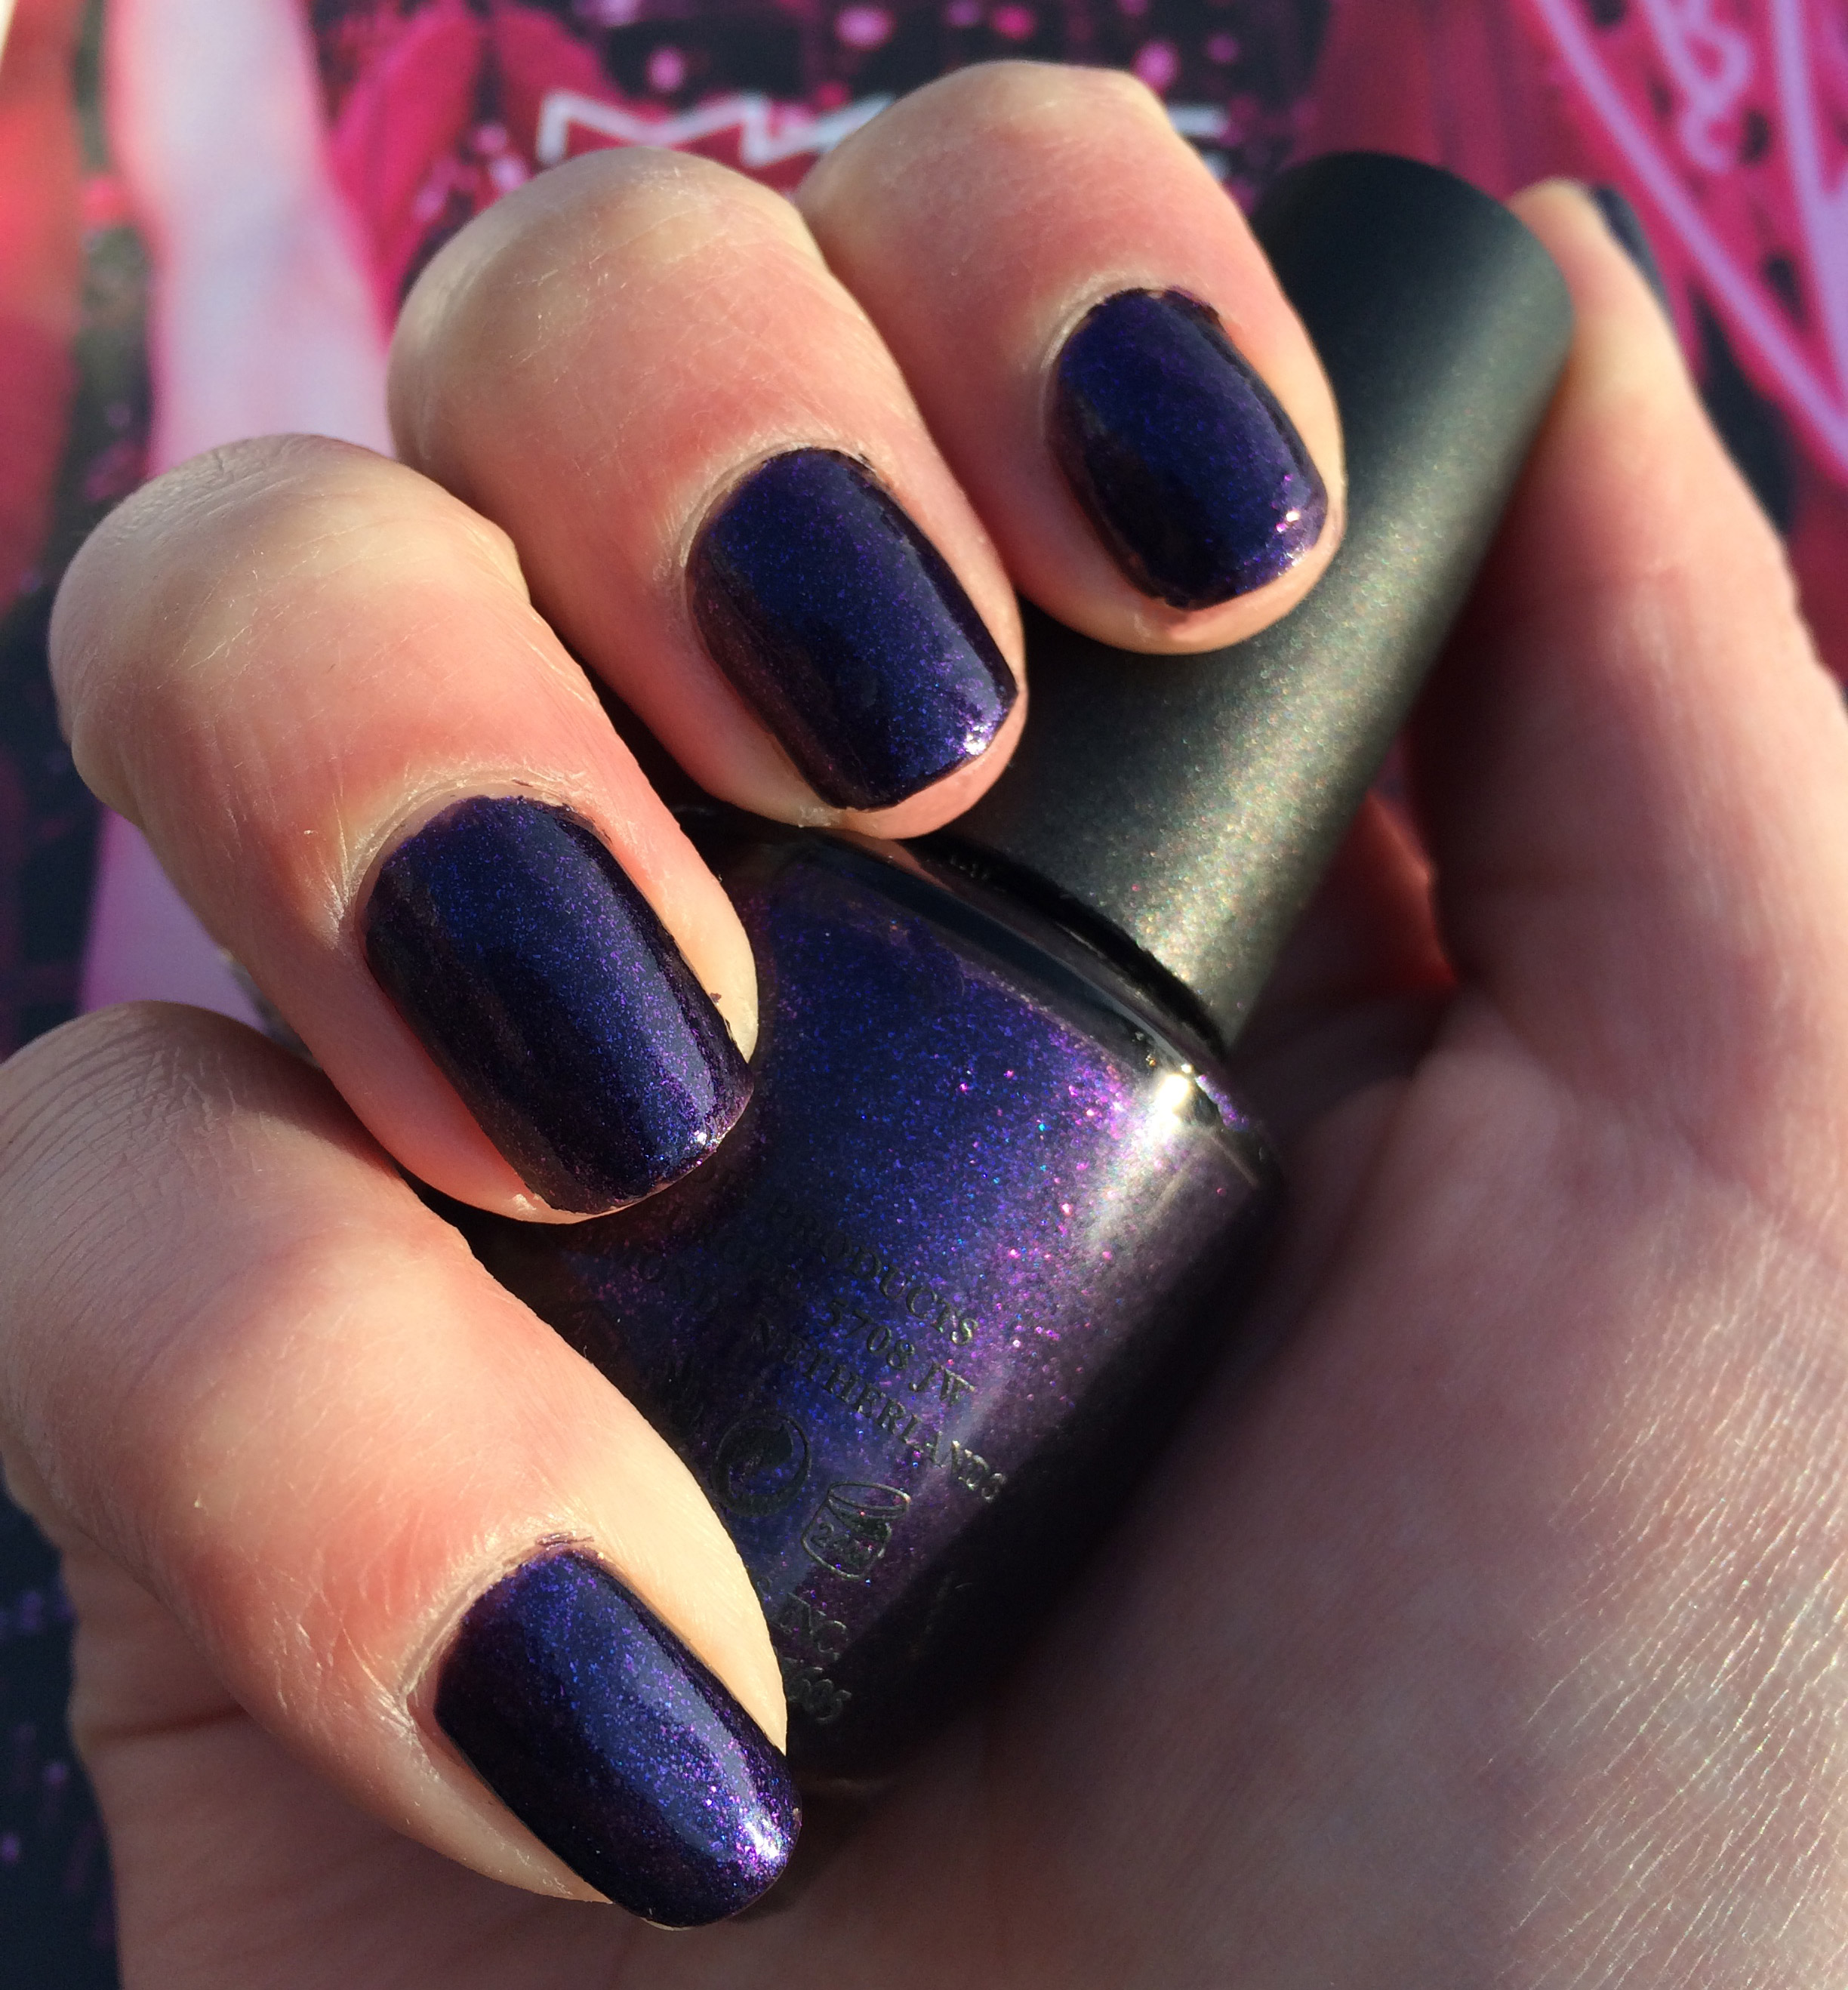 OPI-Ink-review